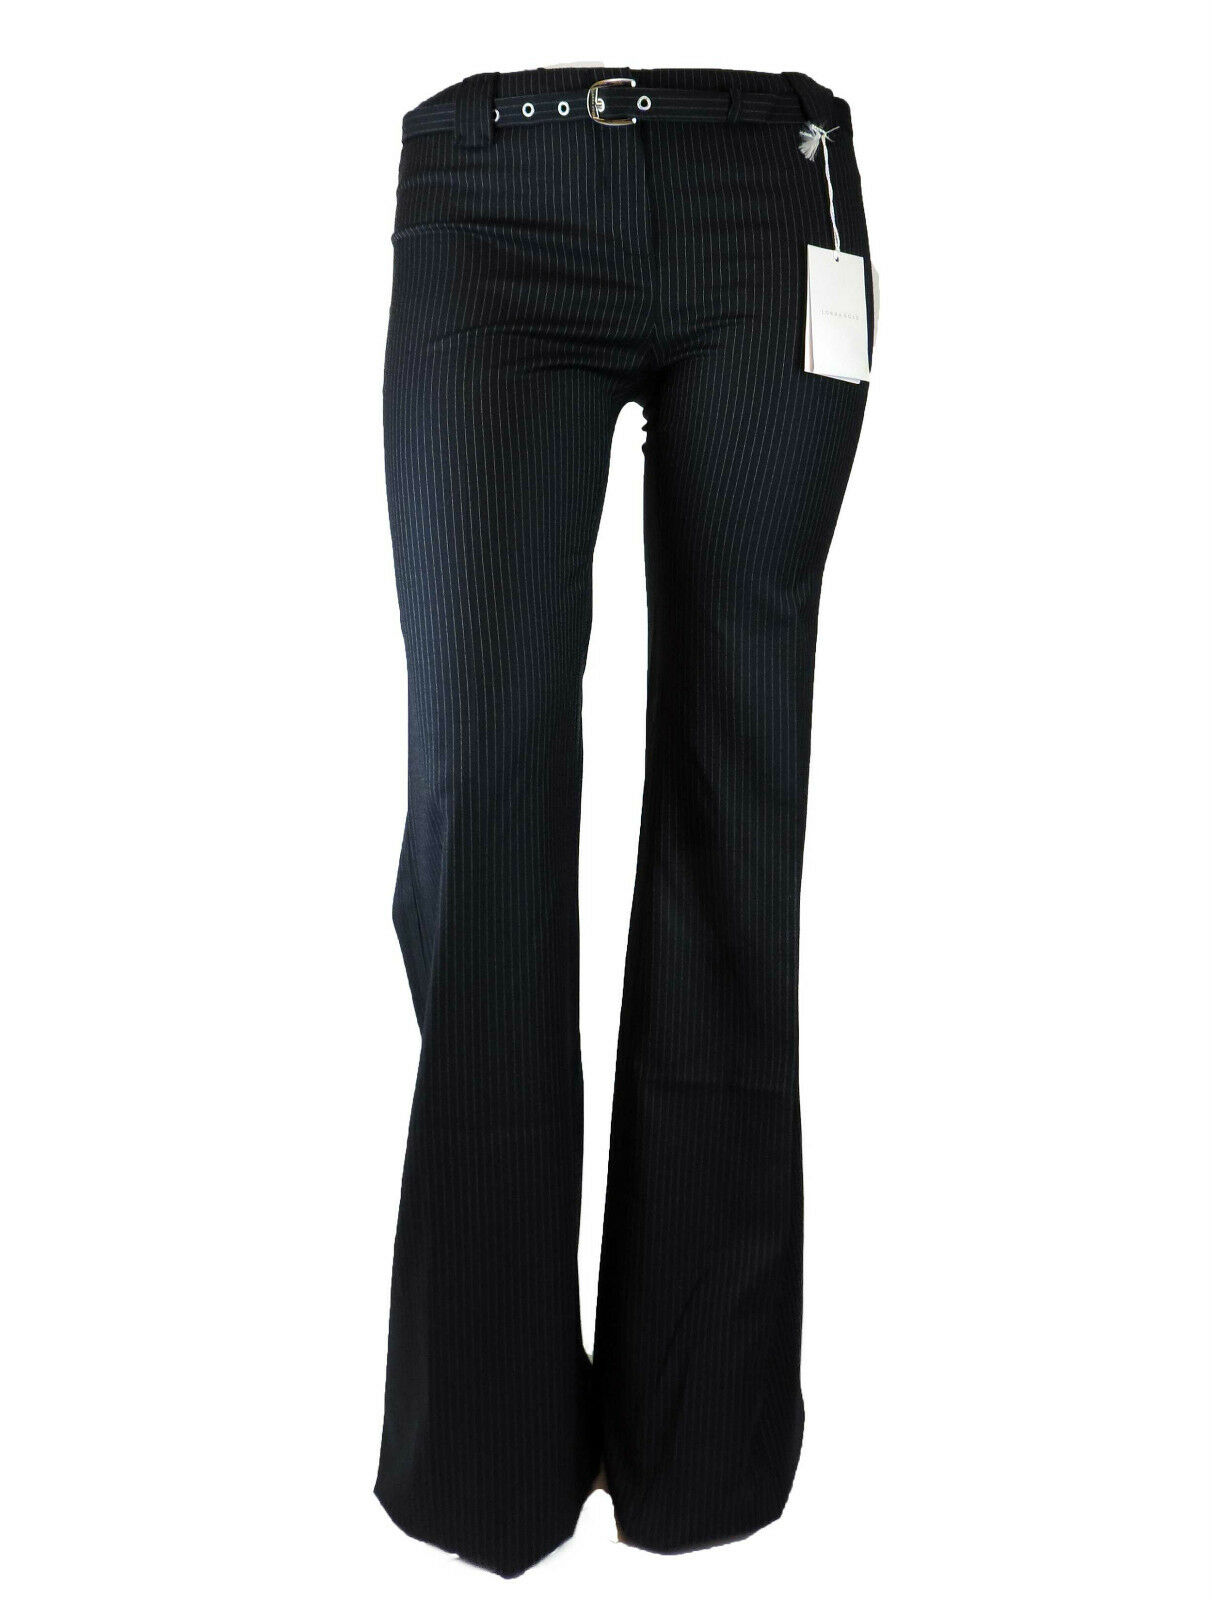 Lorna bosè TROUSERS NAVY NEEDLE STRIPE Bose Geschäft TROUSERS Wolle NEW WITH TAGS